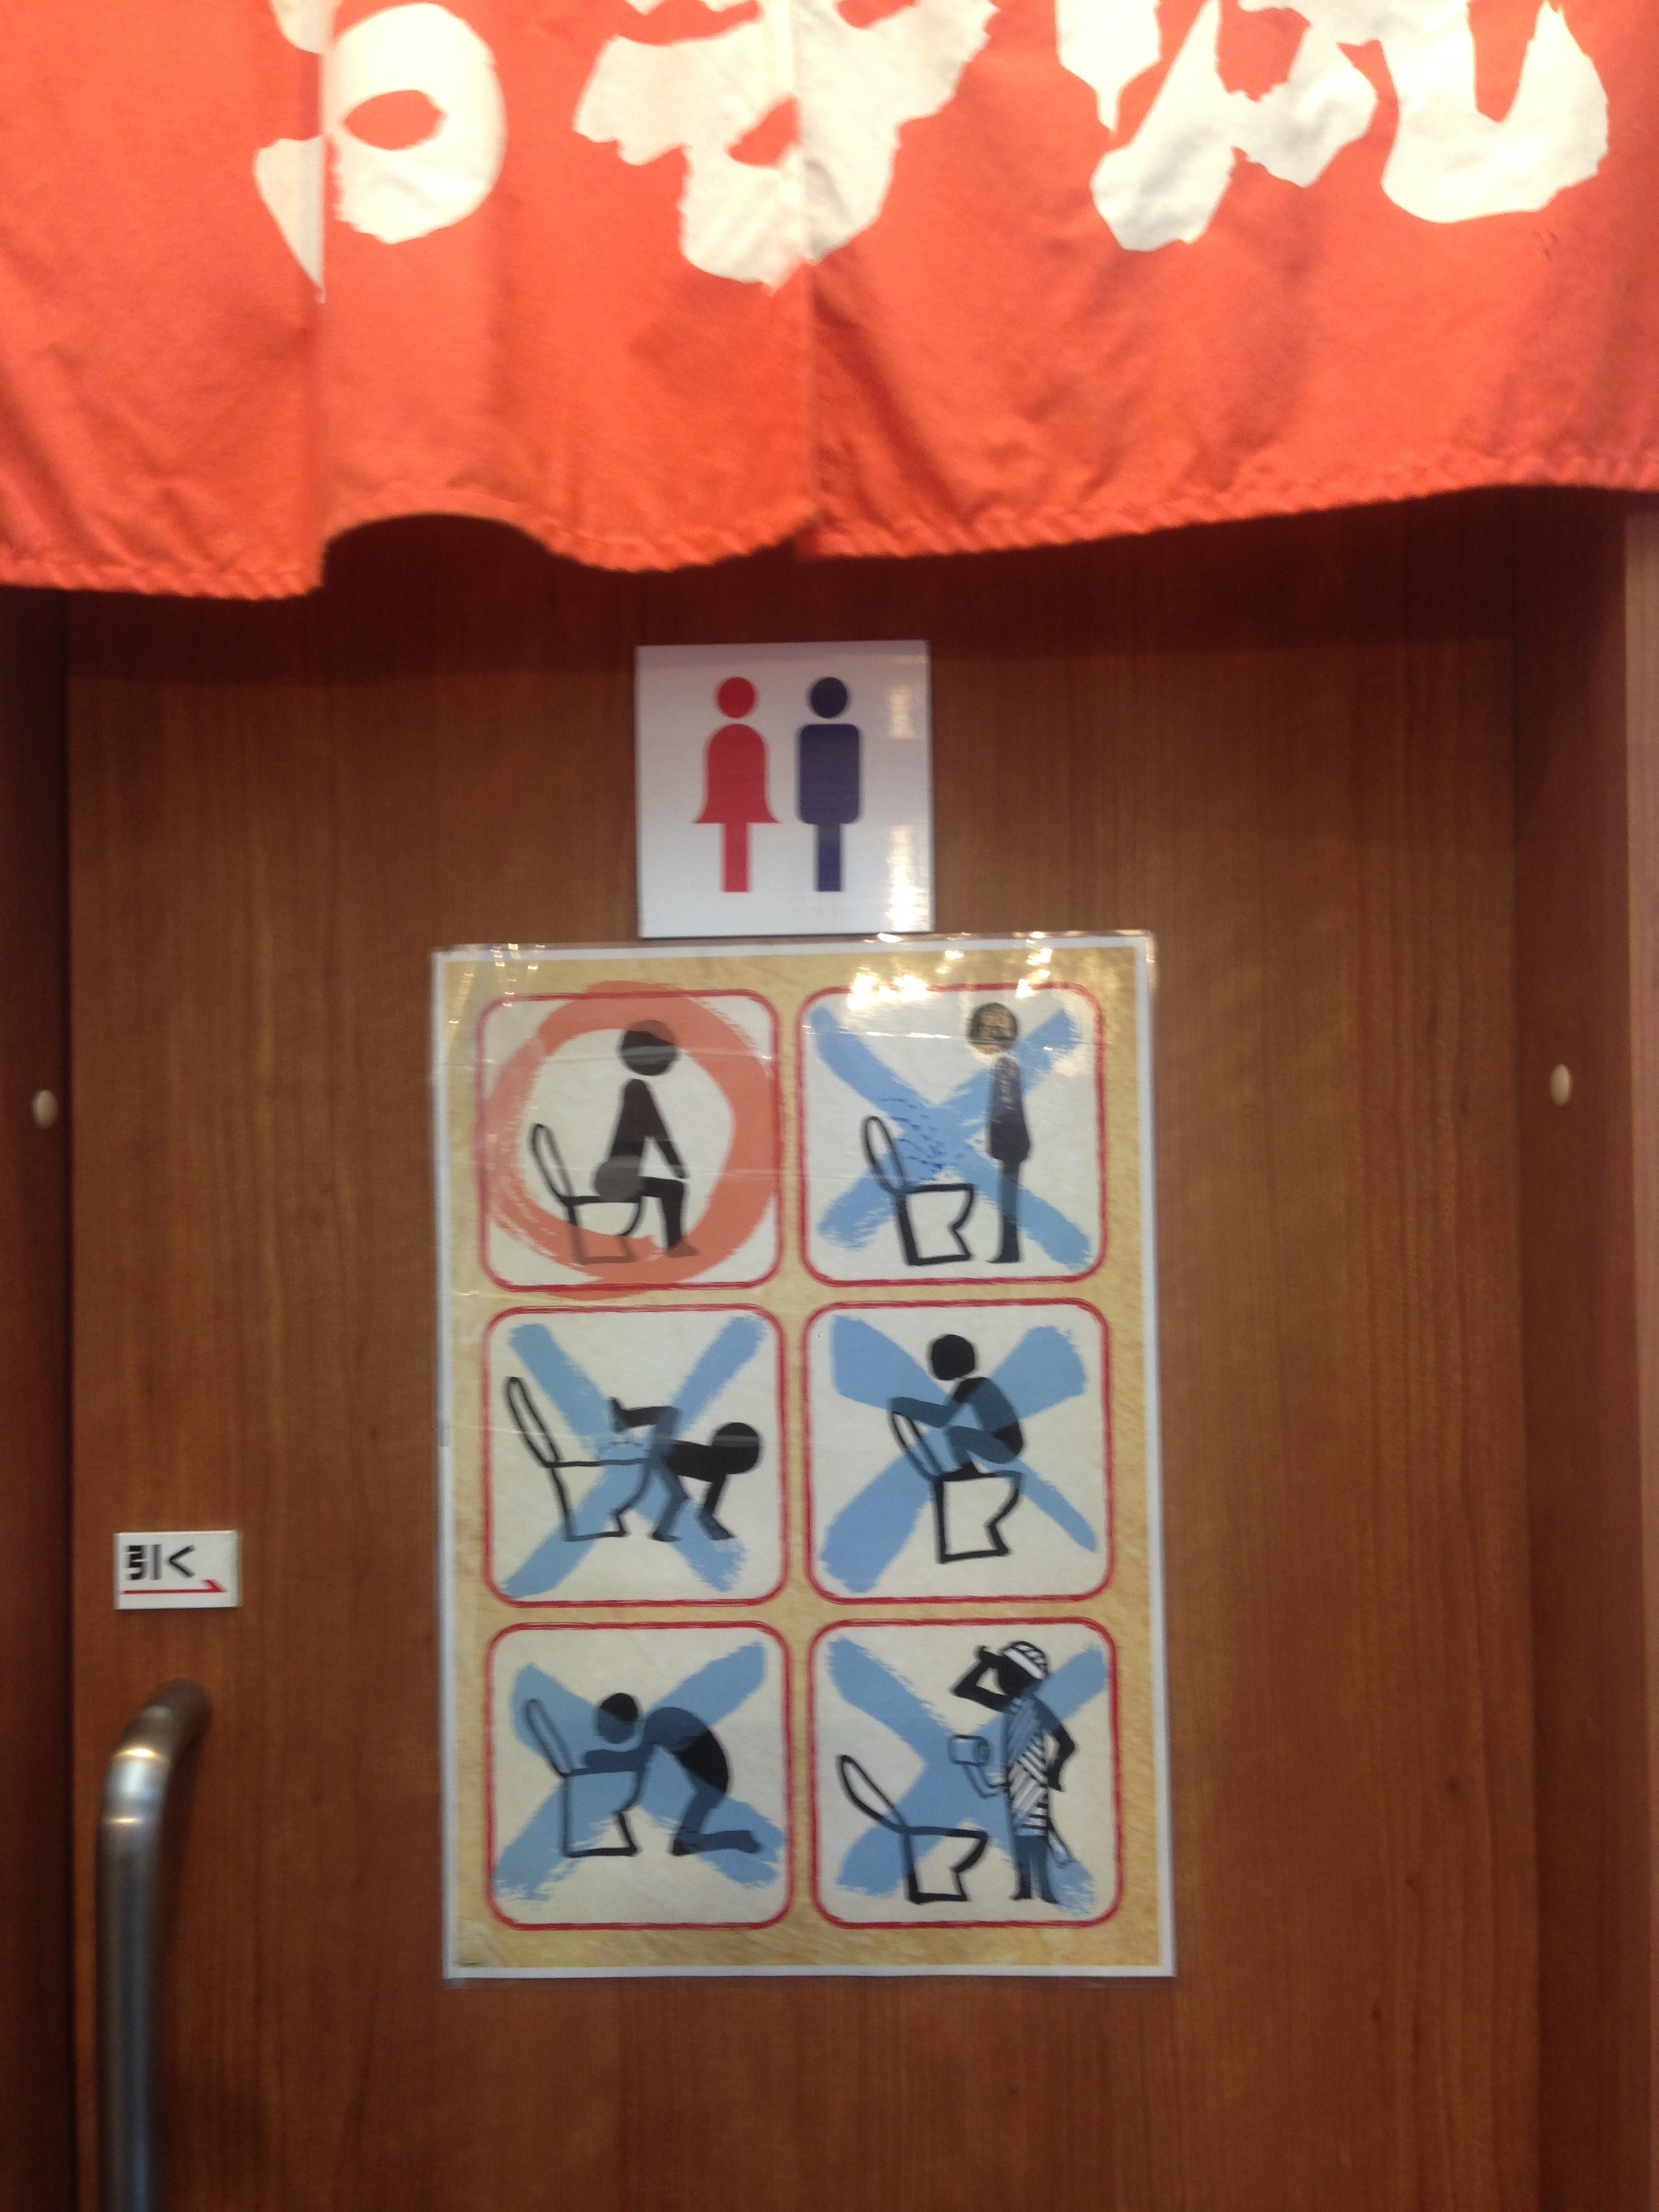 In case you were confused, the Japanese have made their bathroom rules VERY clear